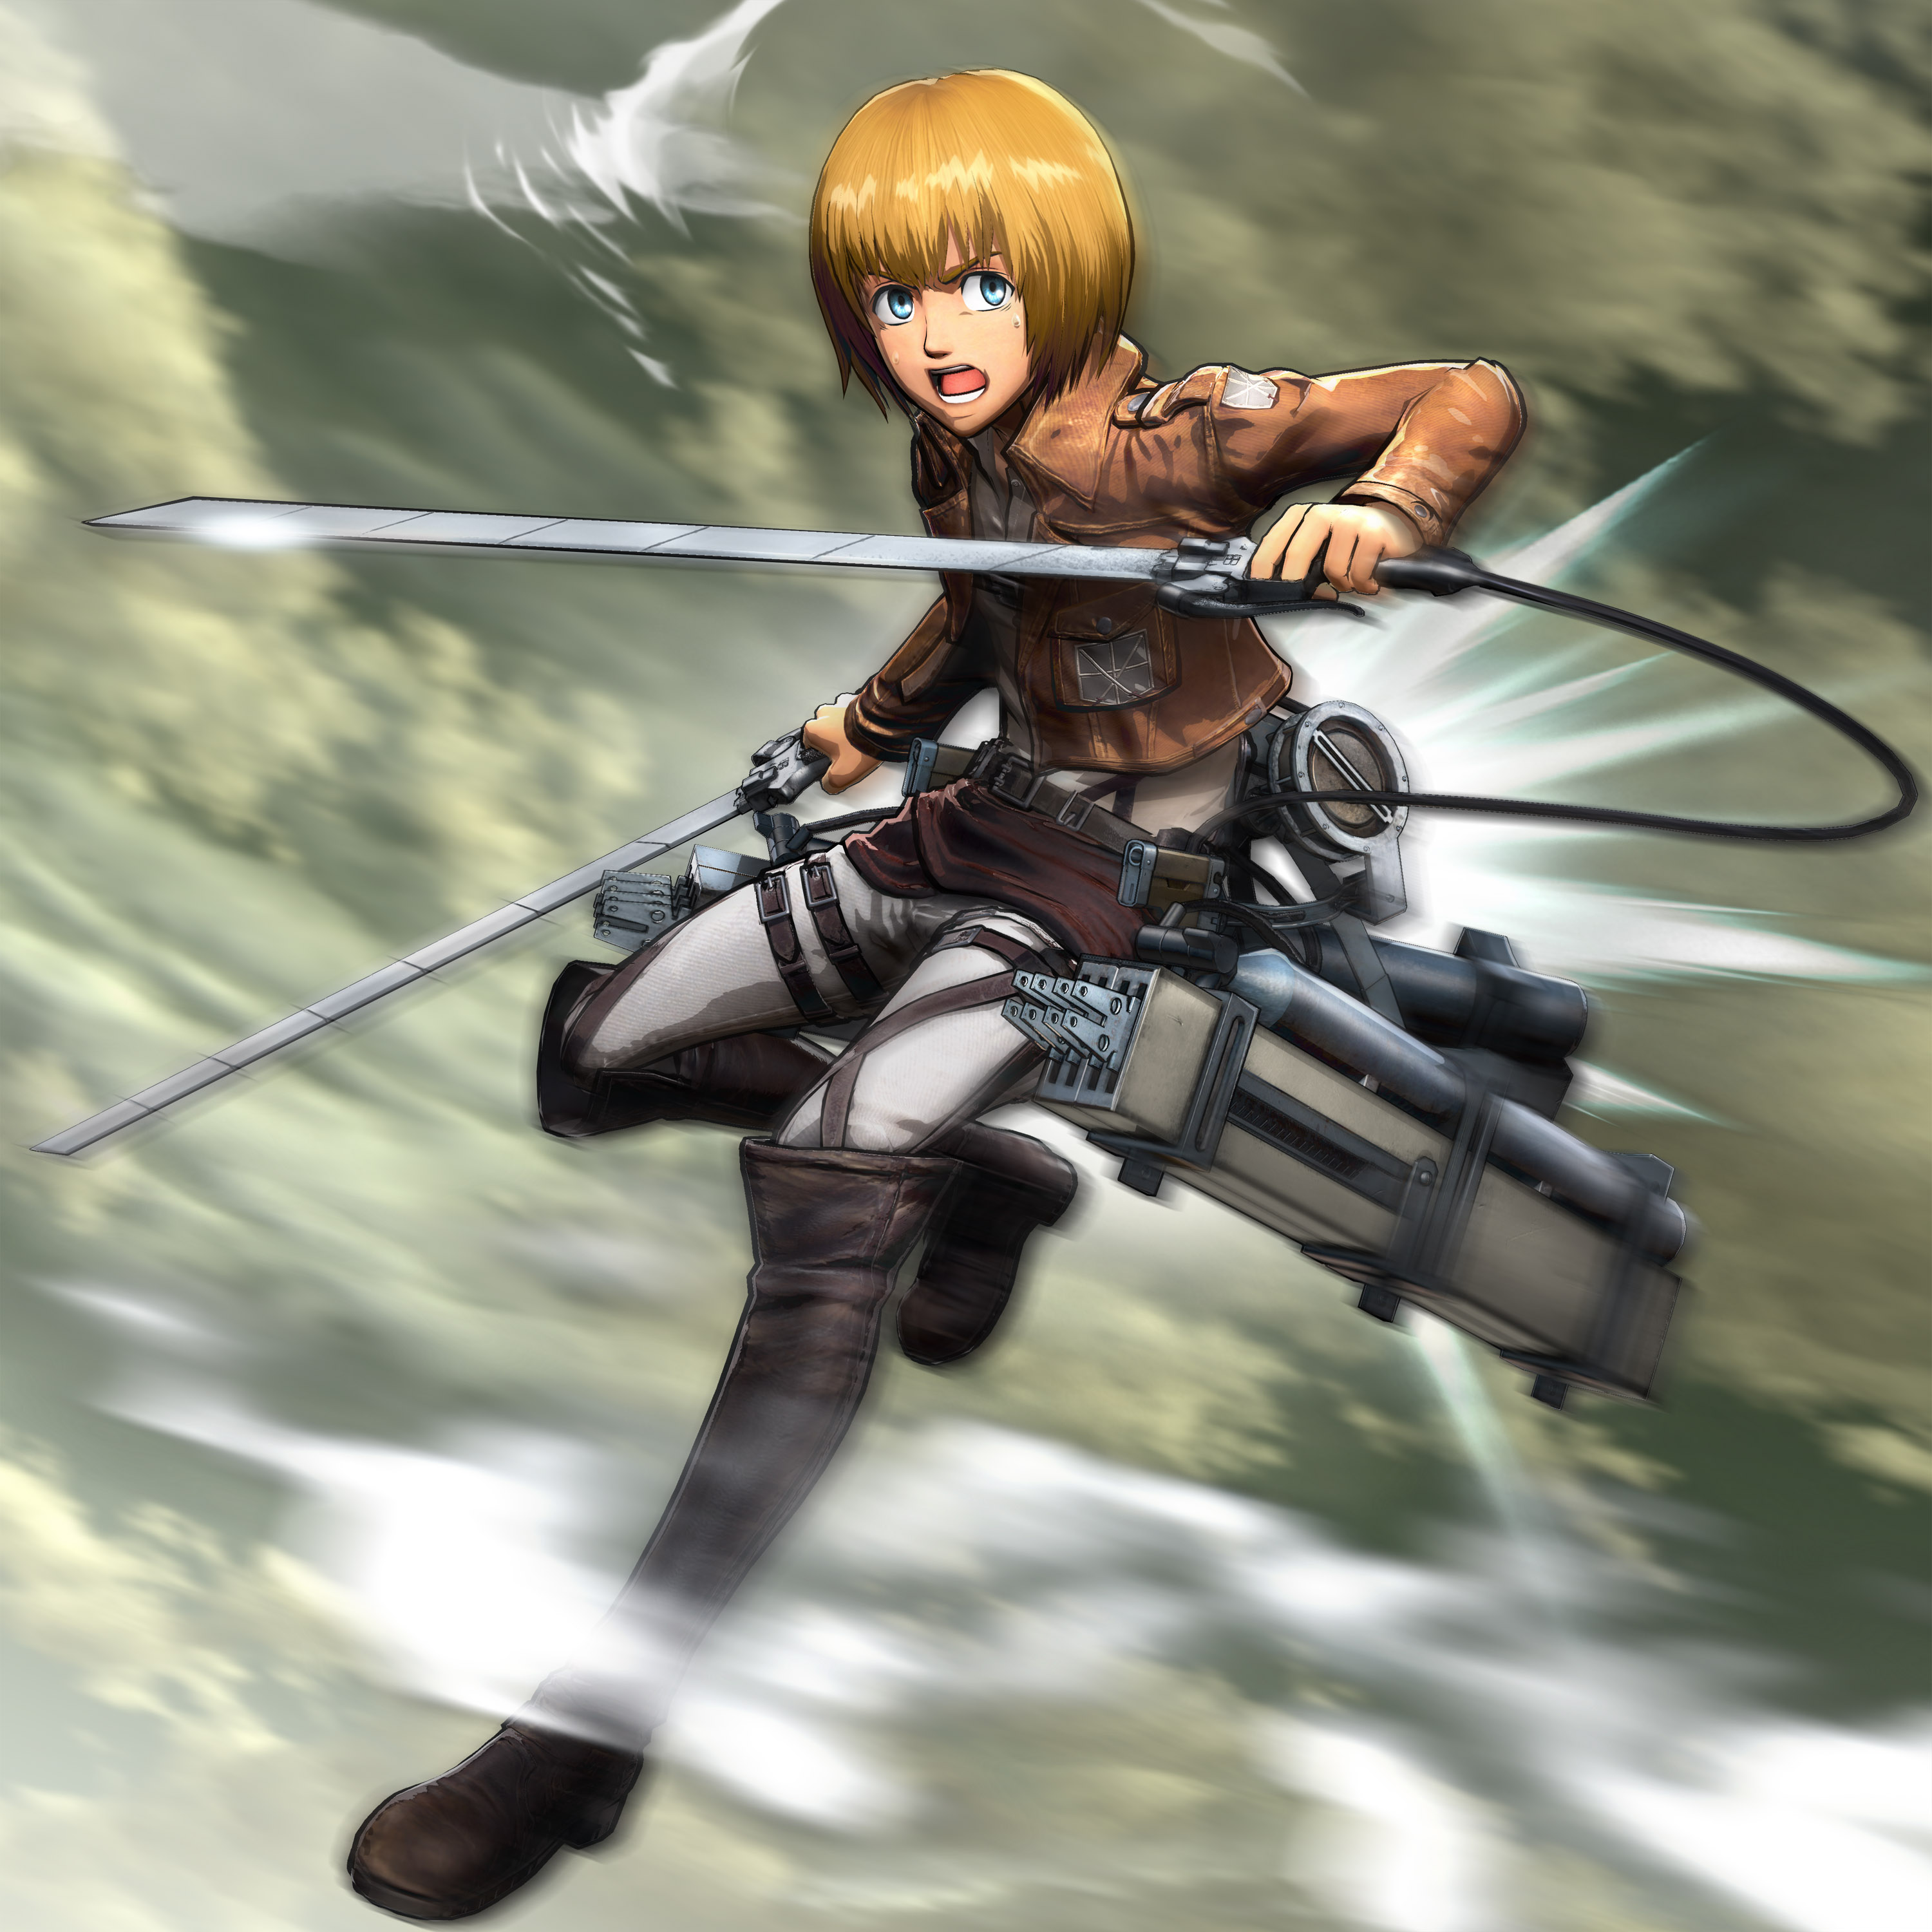 Attack On Titan Video Game Revealed At Tokyo Game Show